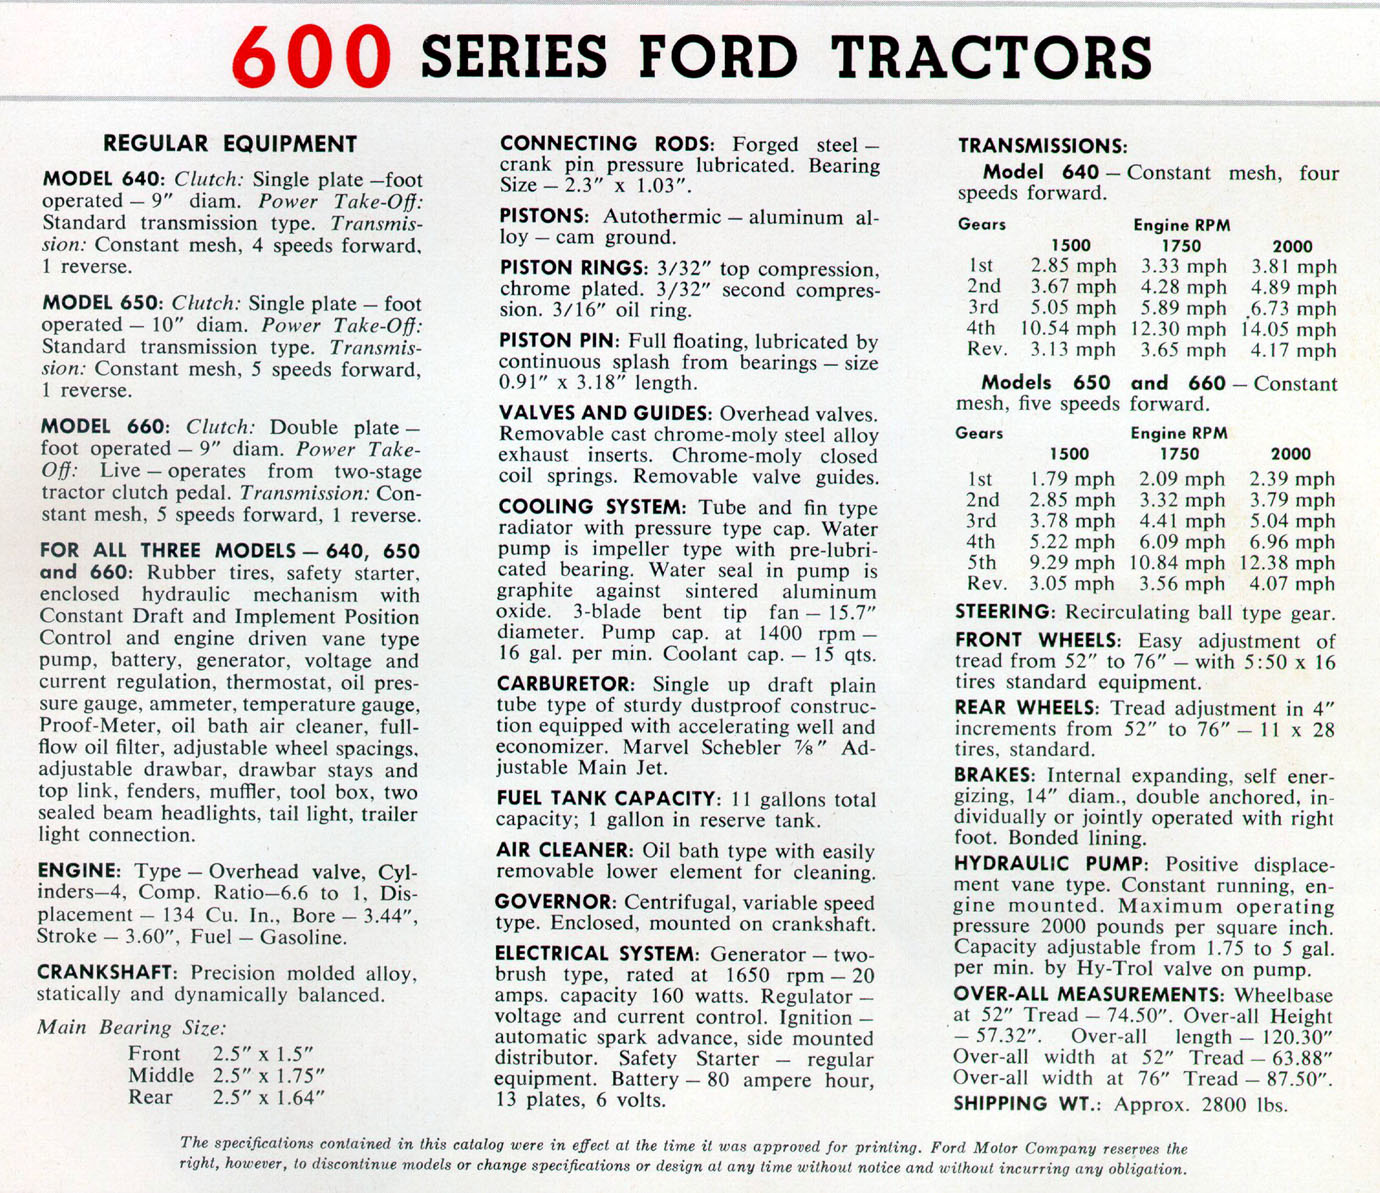 ford 4500 tractor manual pdf